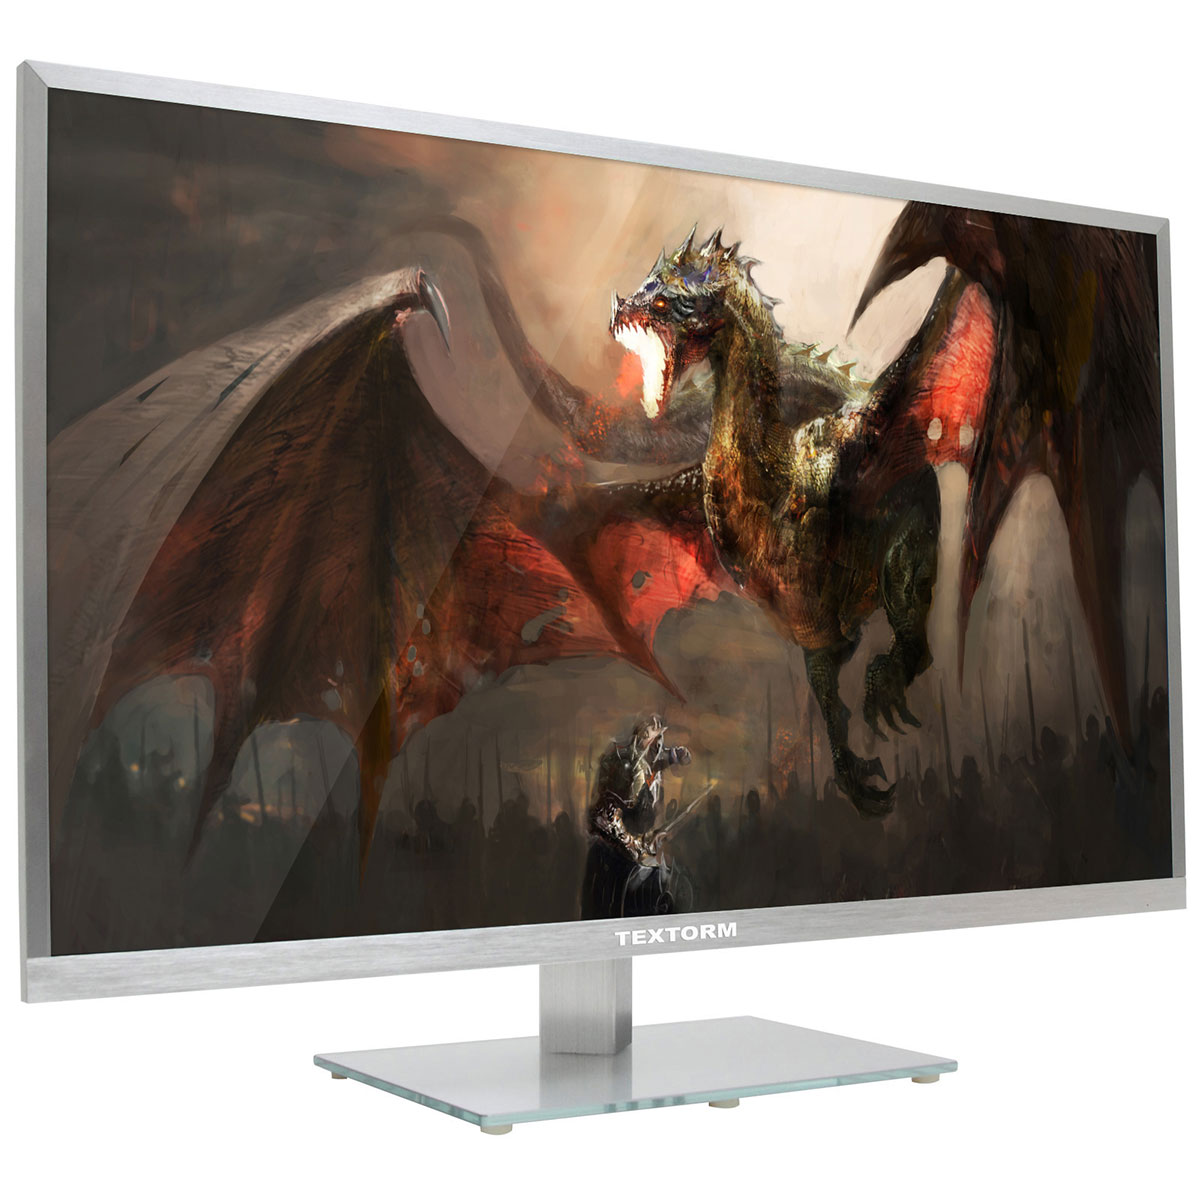 "Ecran PC Textorm 31.5"" LED - TX32 2560 x 1440 pixels - 8 ms - Format large 16/9 - Dalle VA - HDMI - Argent"